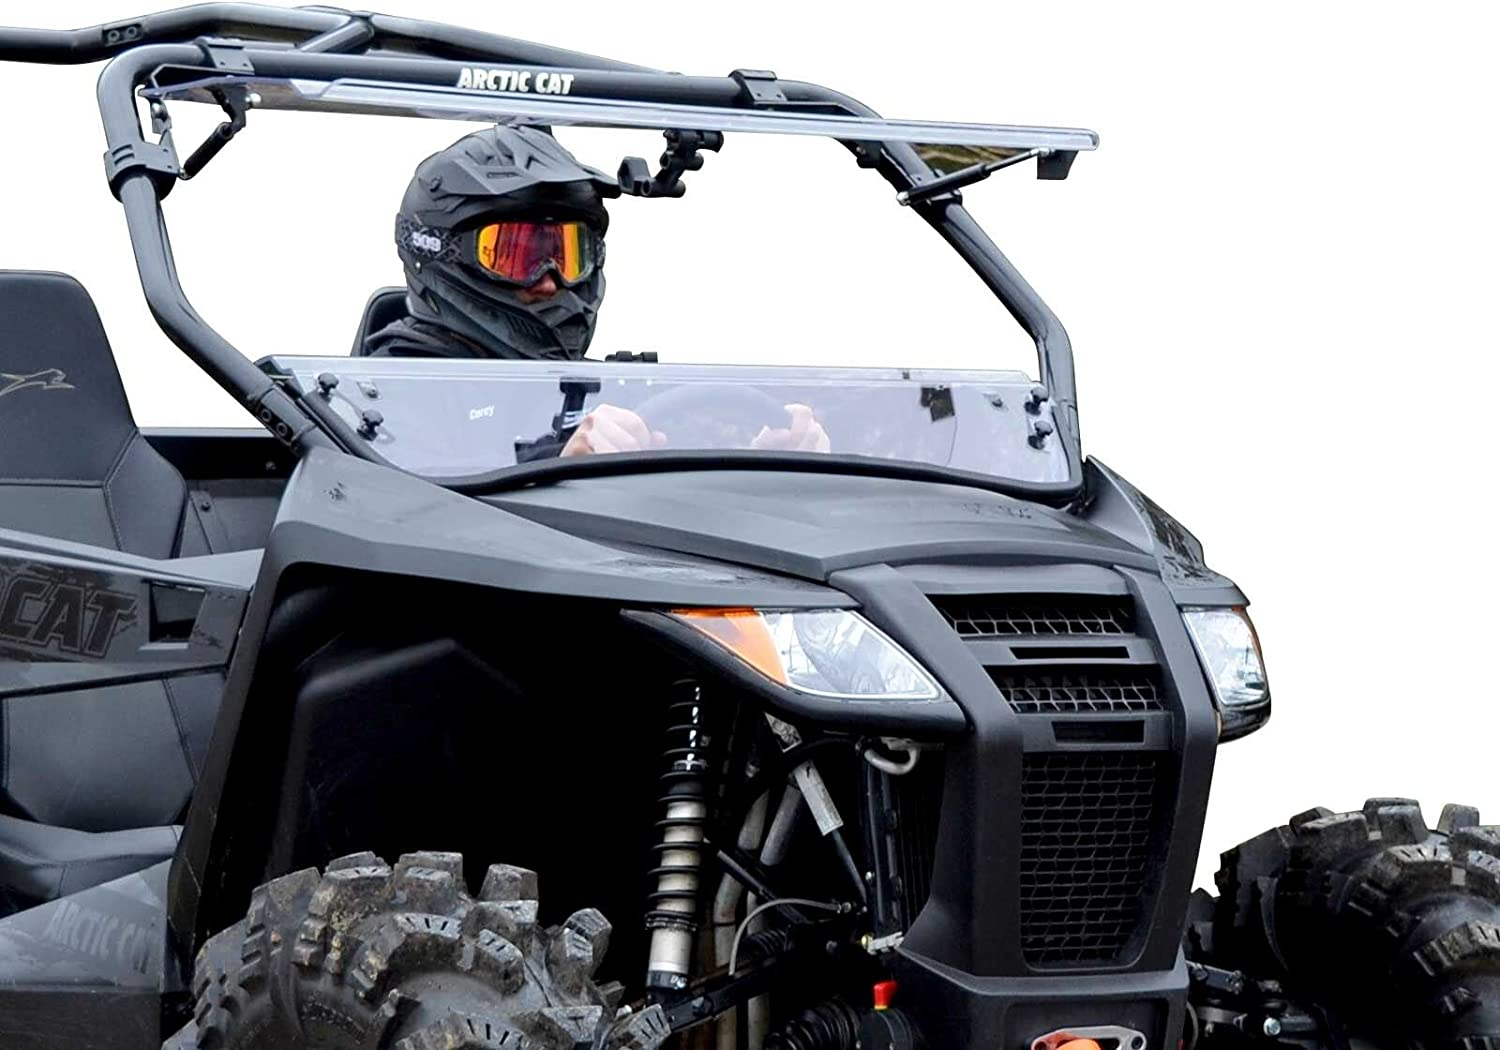 SuperATV Heavy Duty Scratch Resistant 3-IN-1 Flip Windshield for Arctic Cat Wildcat Trail 2014+ Can Be Set To 3 Different Positions!